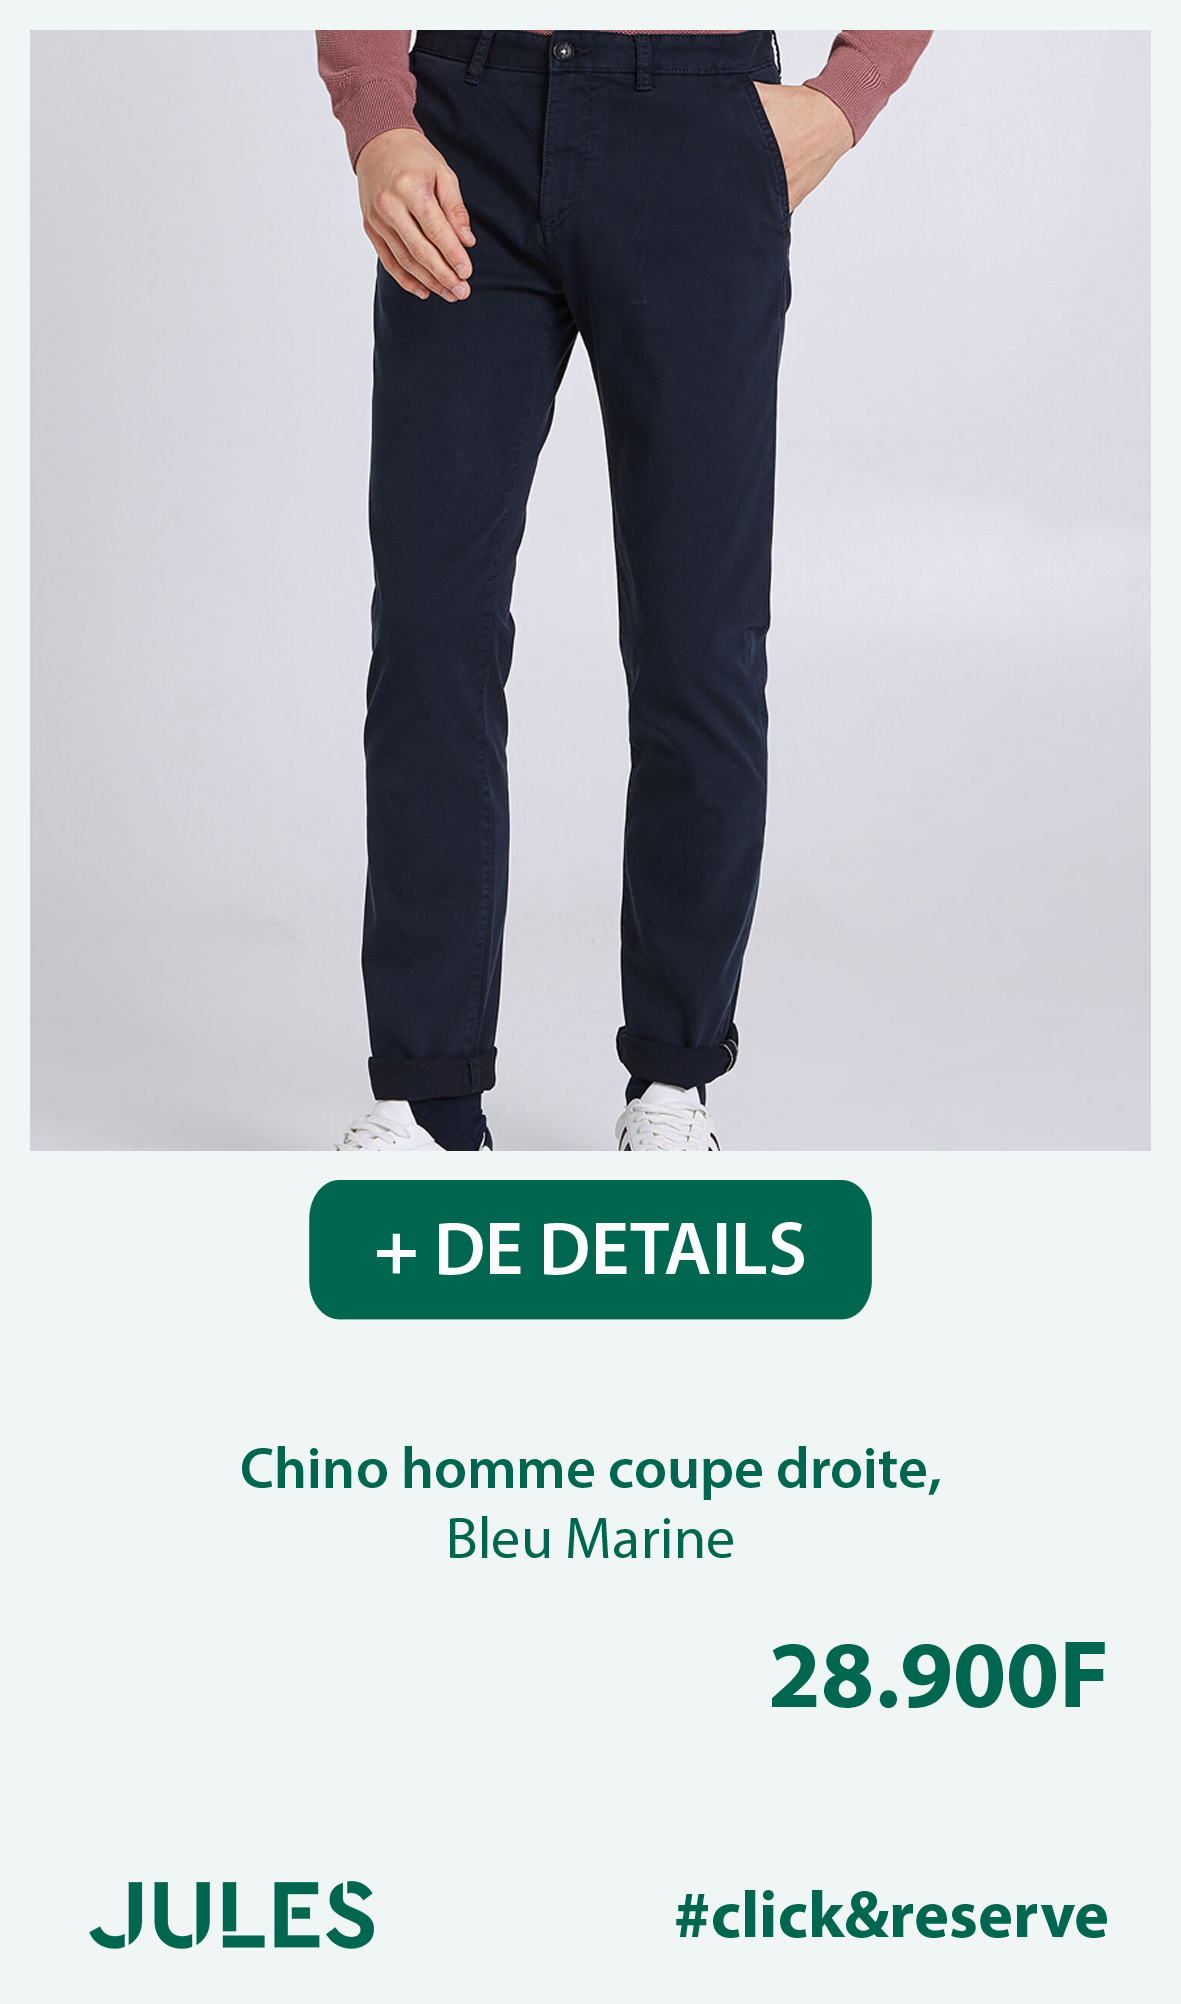 Chino homme coupe droite, Bleu Marine